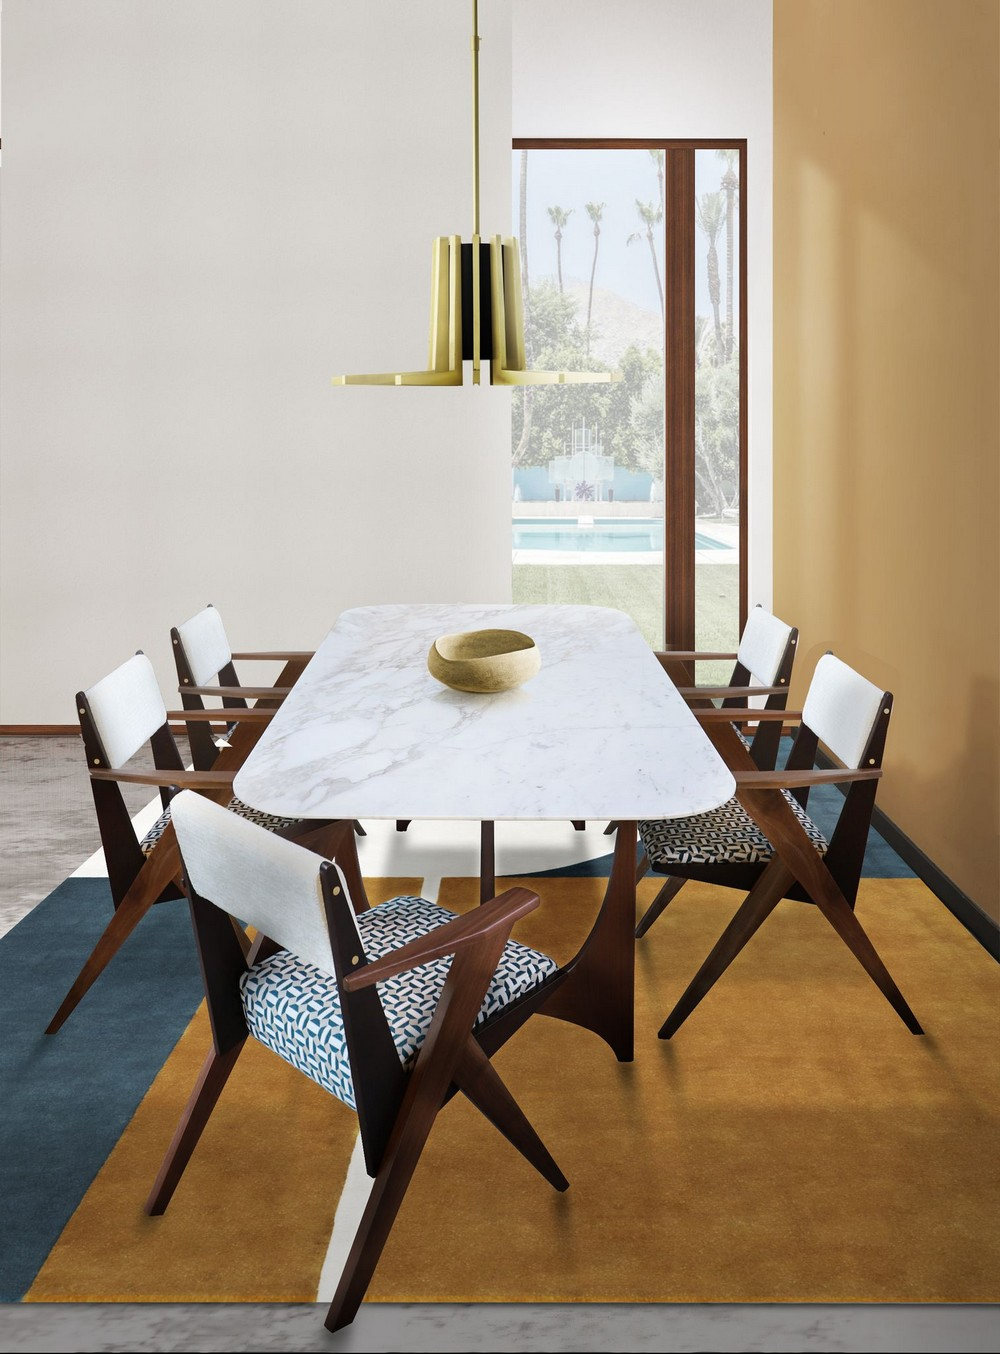 The Perfect Element For Stylish Settings: 10 Dining Tables You'll Love dining tables The Perfect Element For Stylish Settings: 25 Dining Tables You'll Love WaOjRZGP modern dining tables 25 Modern Dining Tables With A Luxury Design WaOjRZGP luxury dining room 50 Incredible Home Decor Ideas For A Luxury Dining Room WaOjRZGP